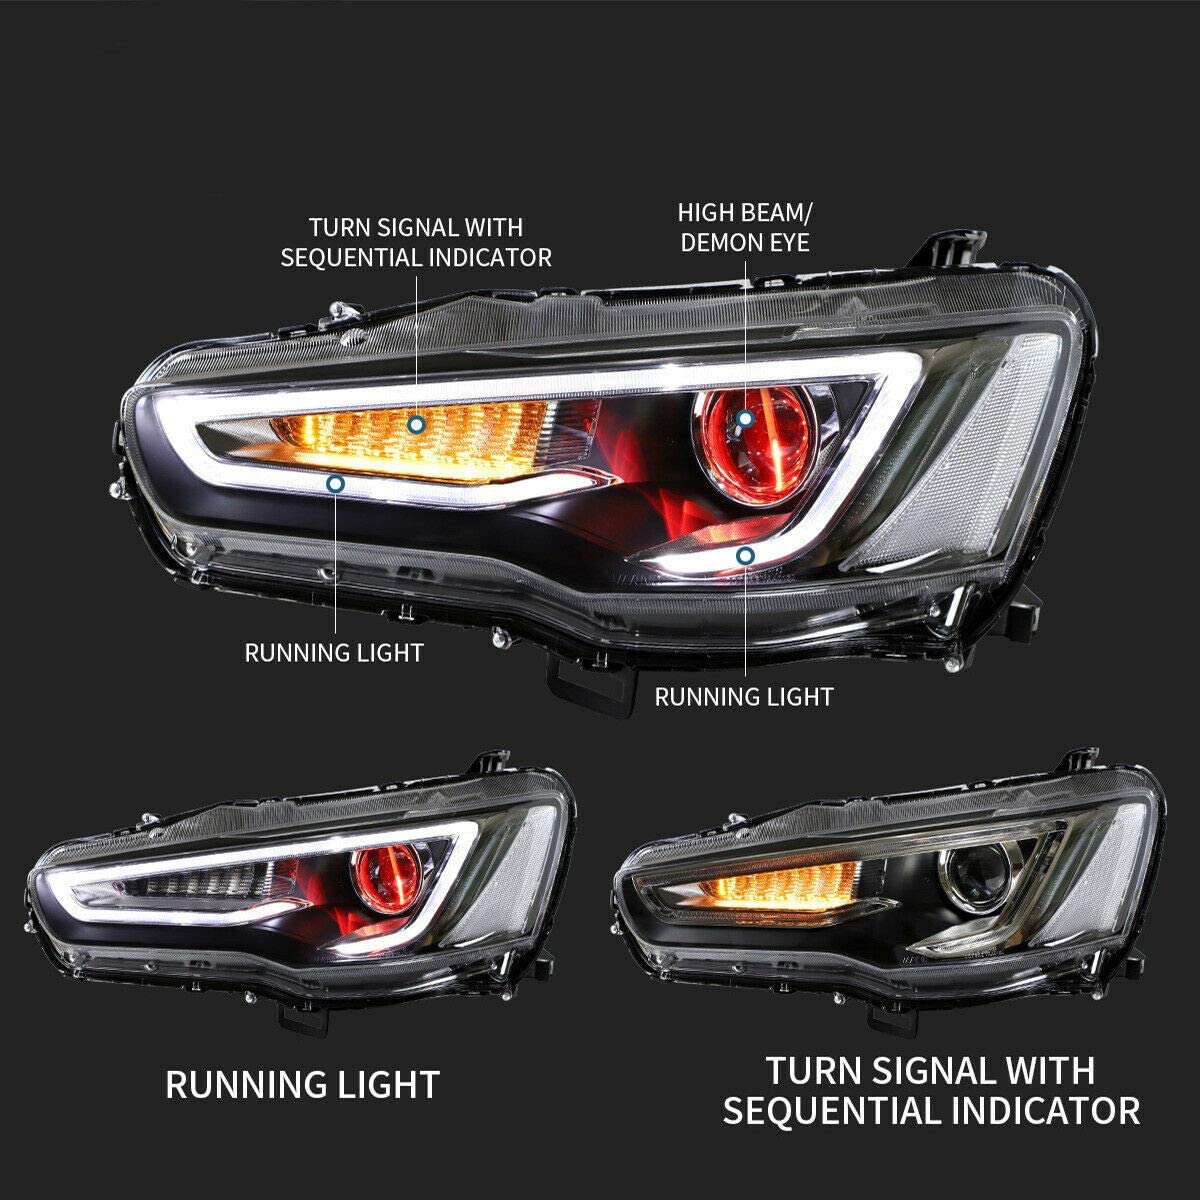 LED Headlights For Mitsubishi Lancer EVO X 2008-2017 Sequential Indicator Dual Beam Front Lamp Assembly